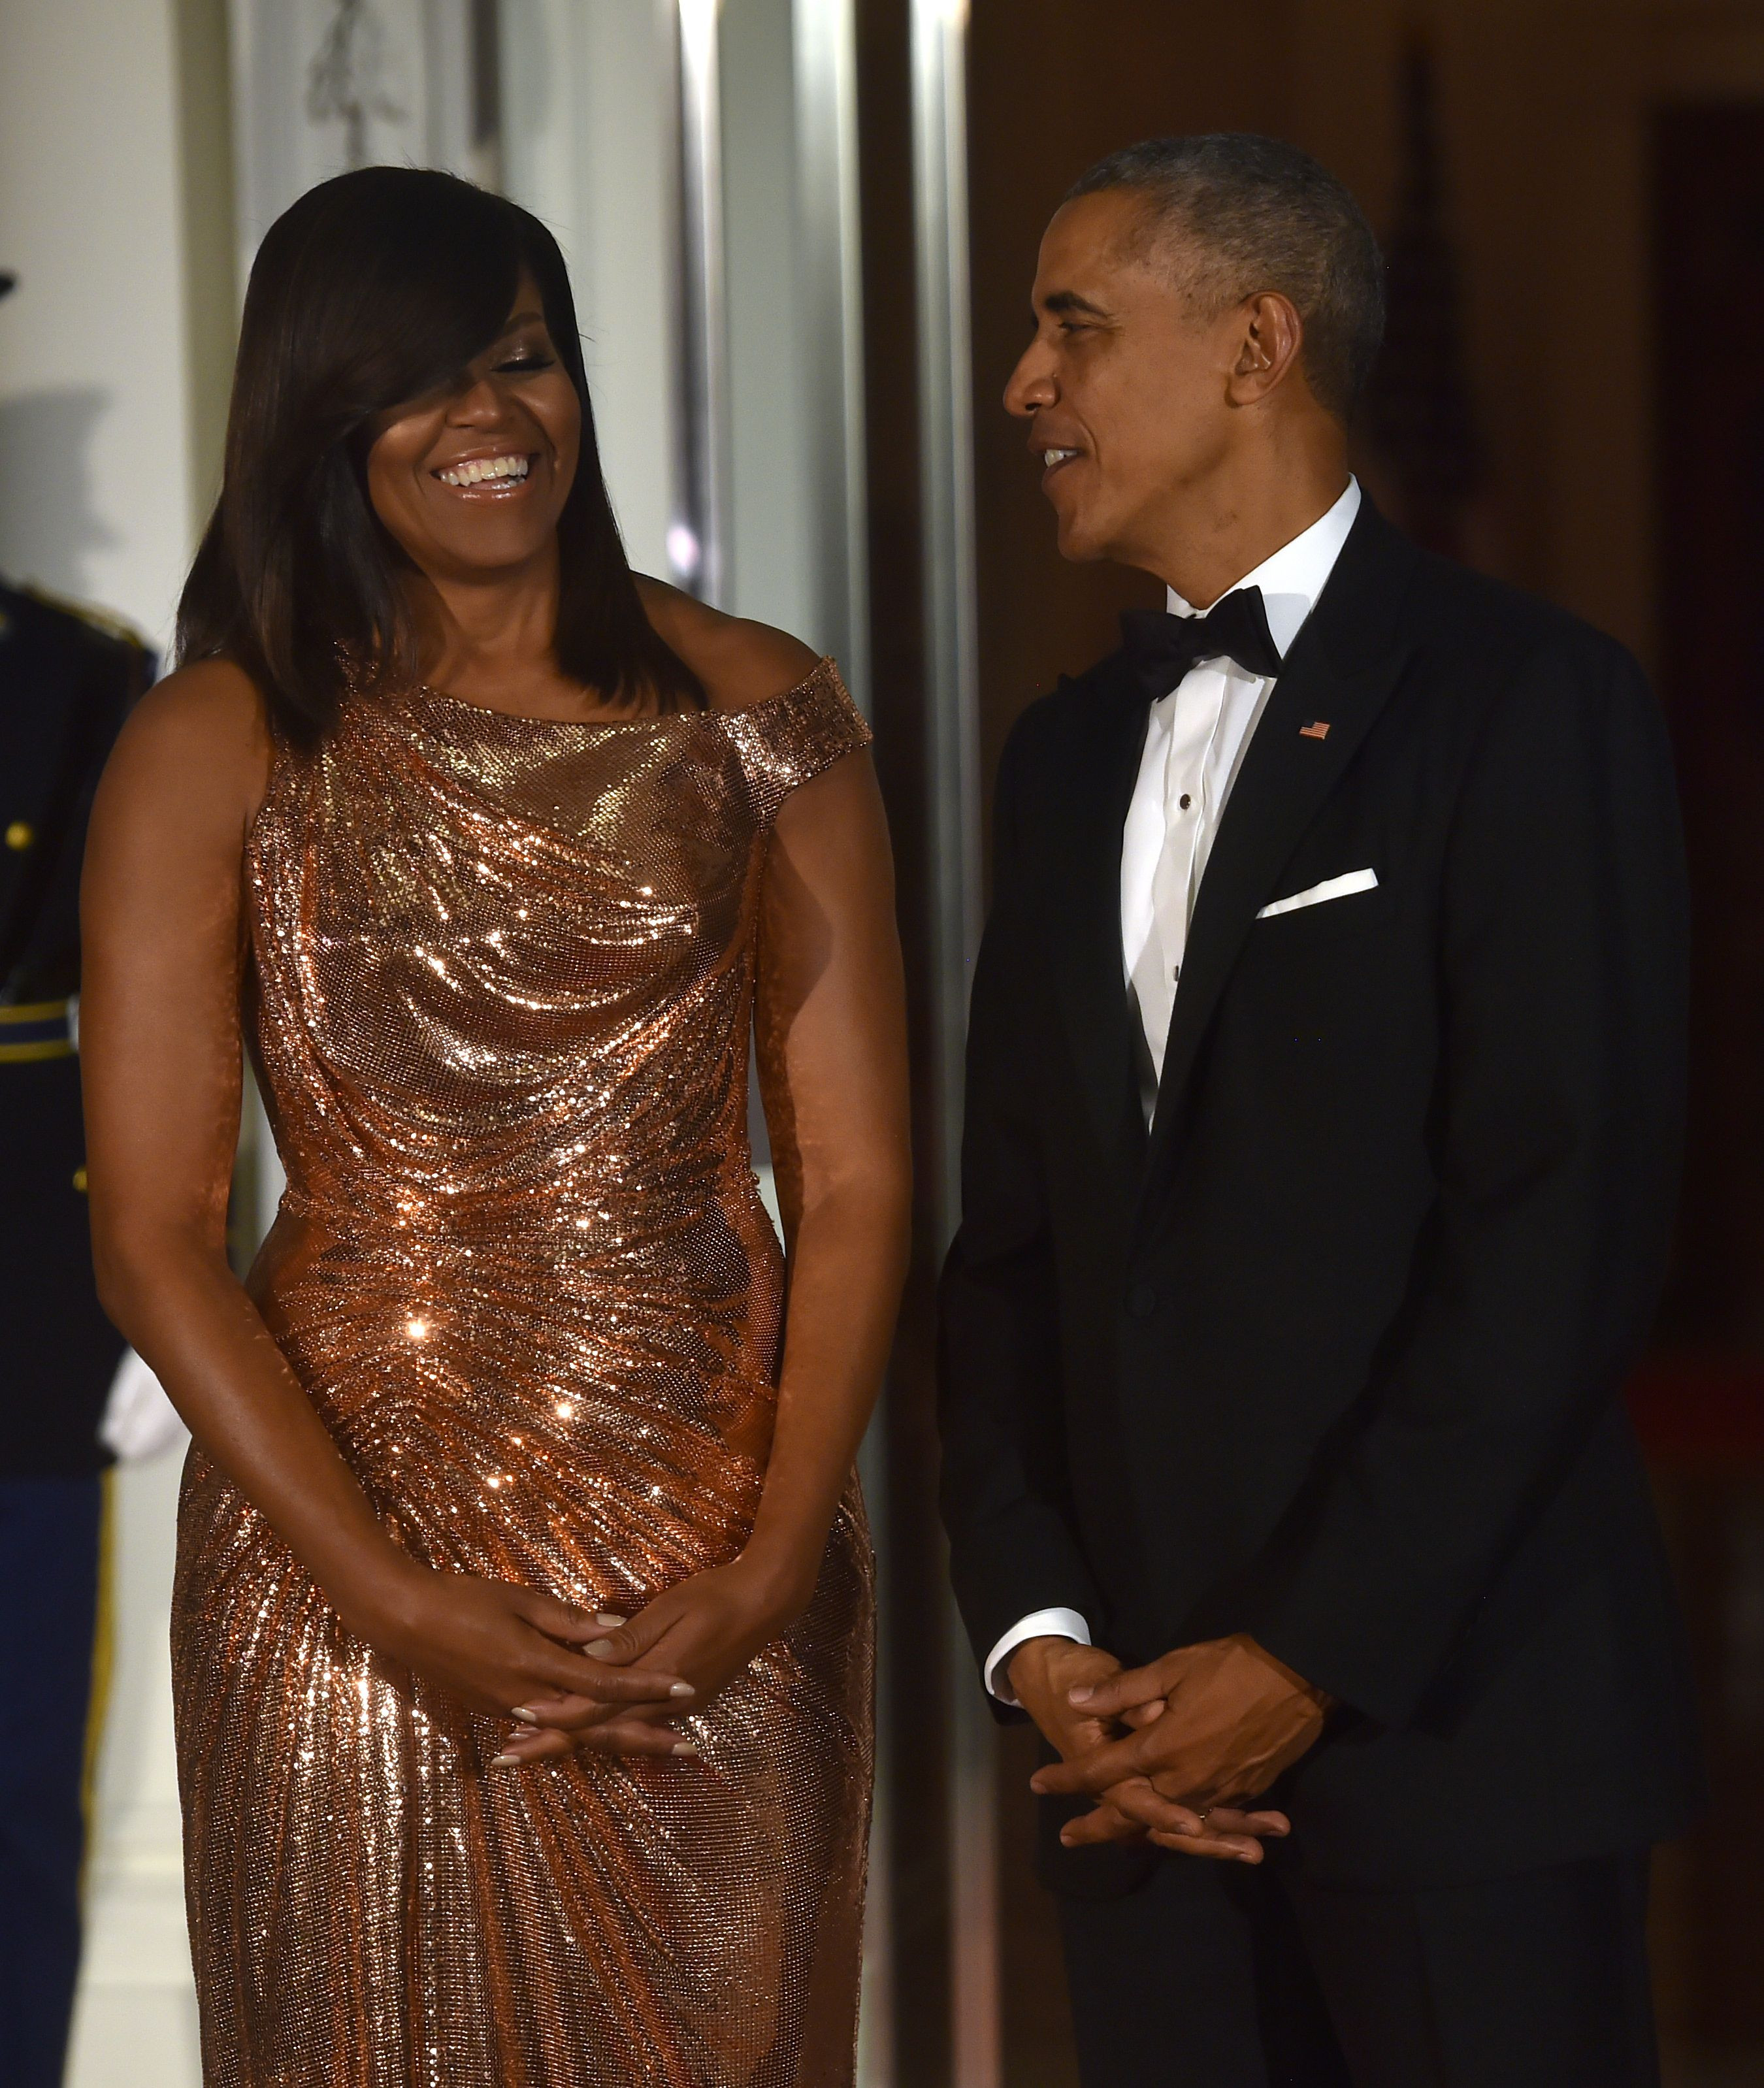 State Dinner 2016  Michelle Obama Slays In Chainmail for Her Last State Dinner